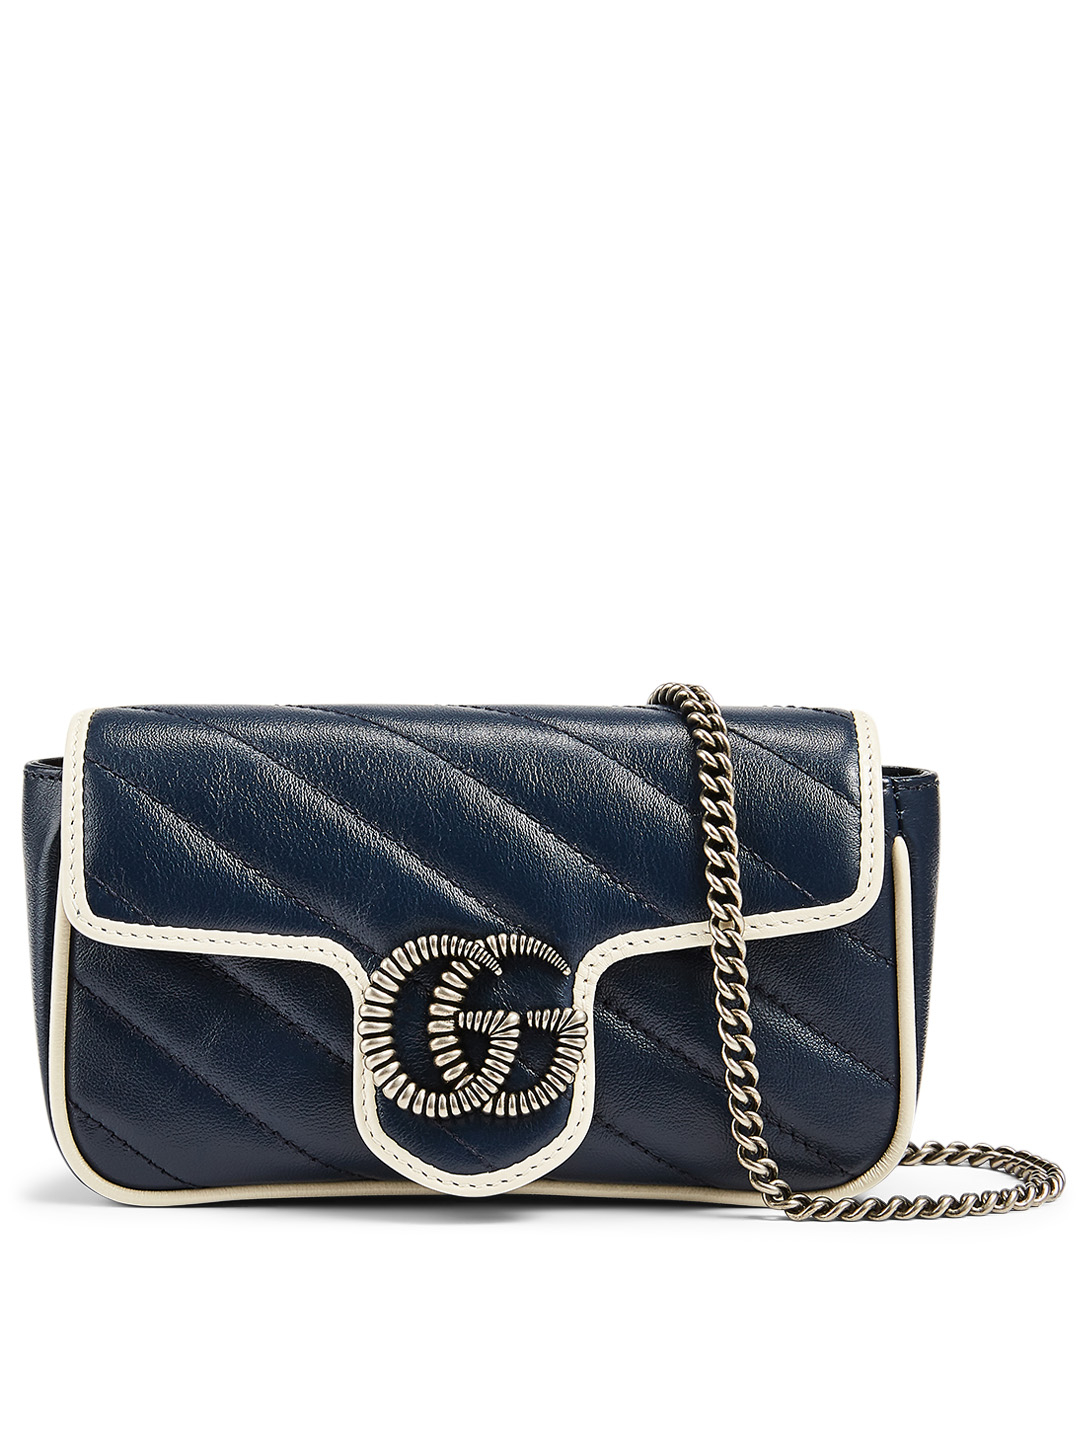 GUCCI Super Mini GG Marmont Leather Bag Women's Blue